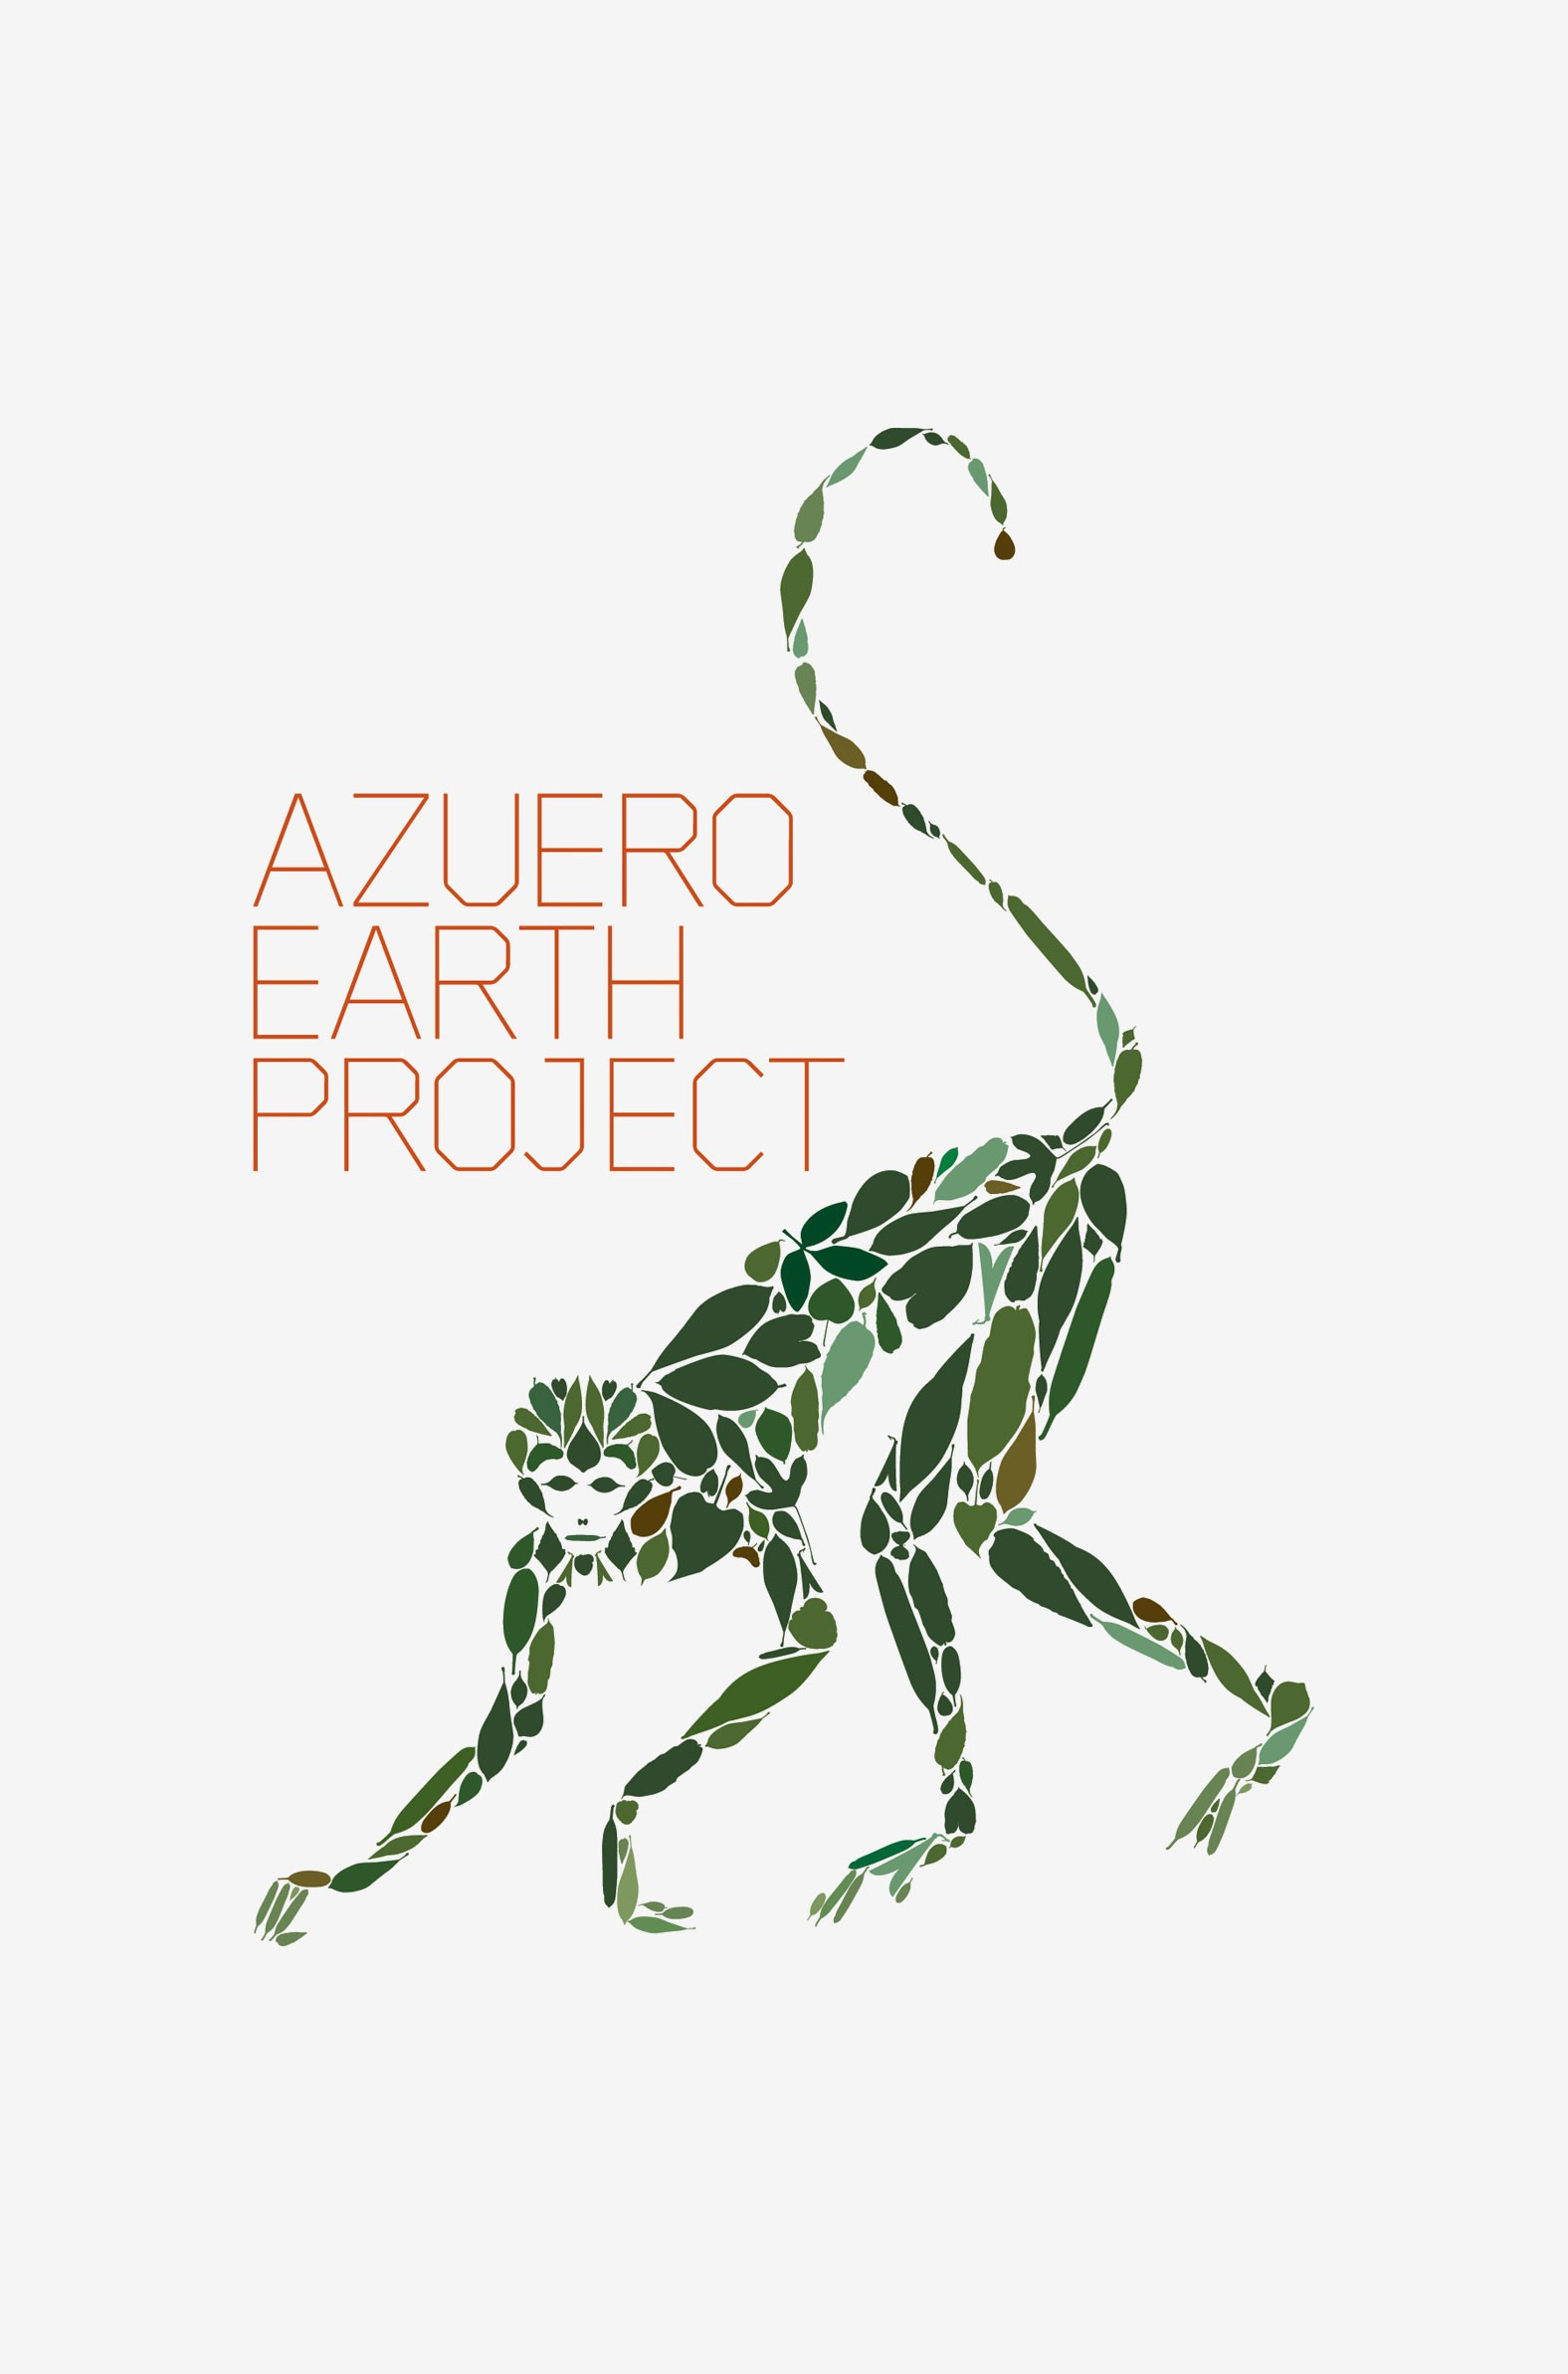 Azuero Earth Project